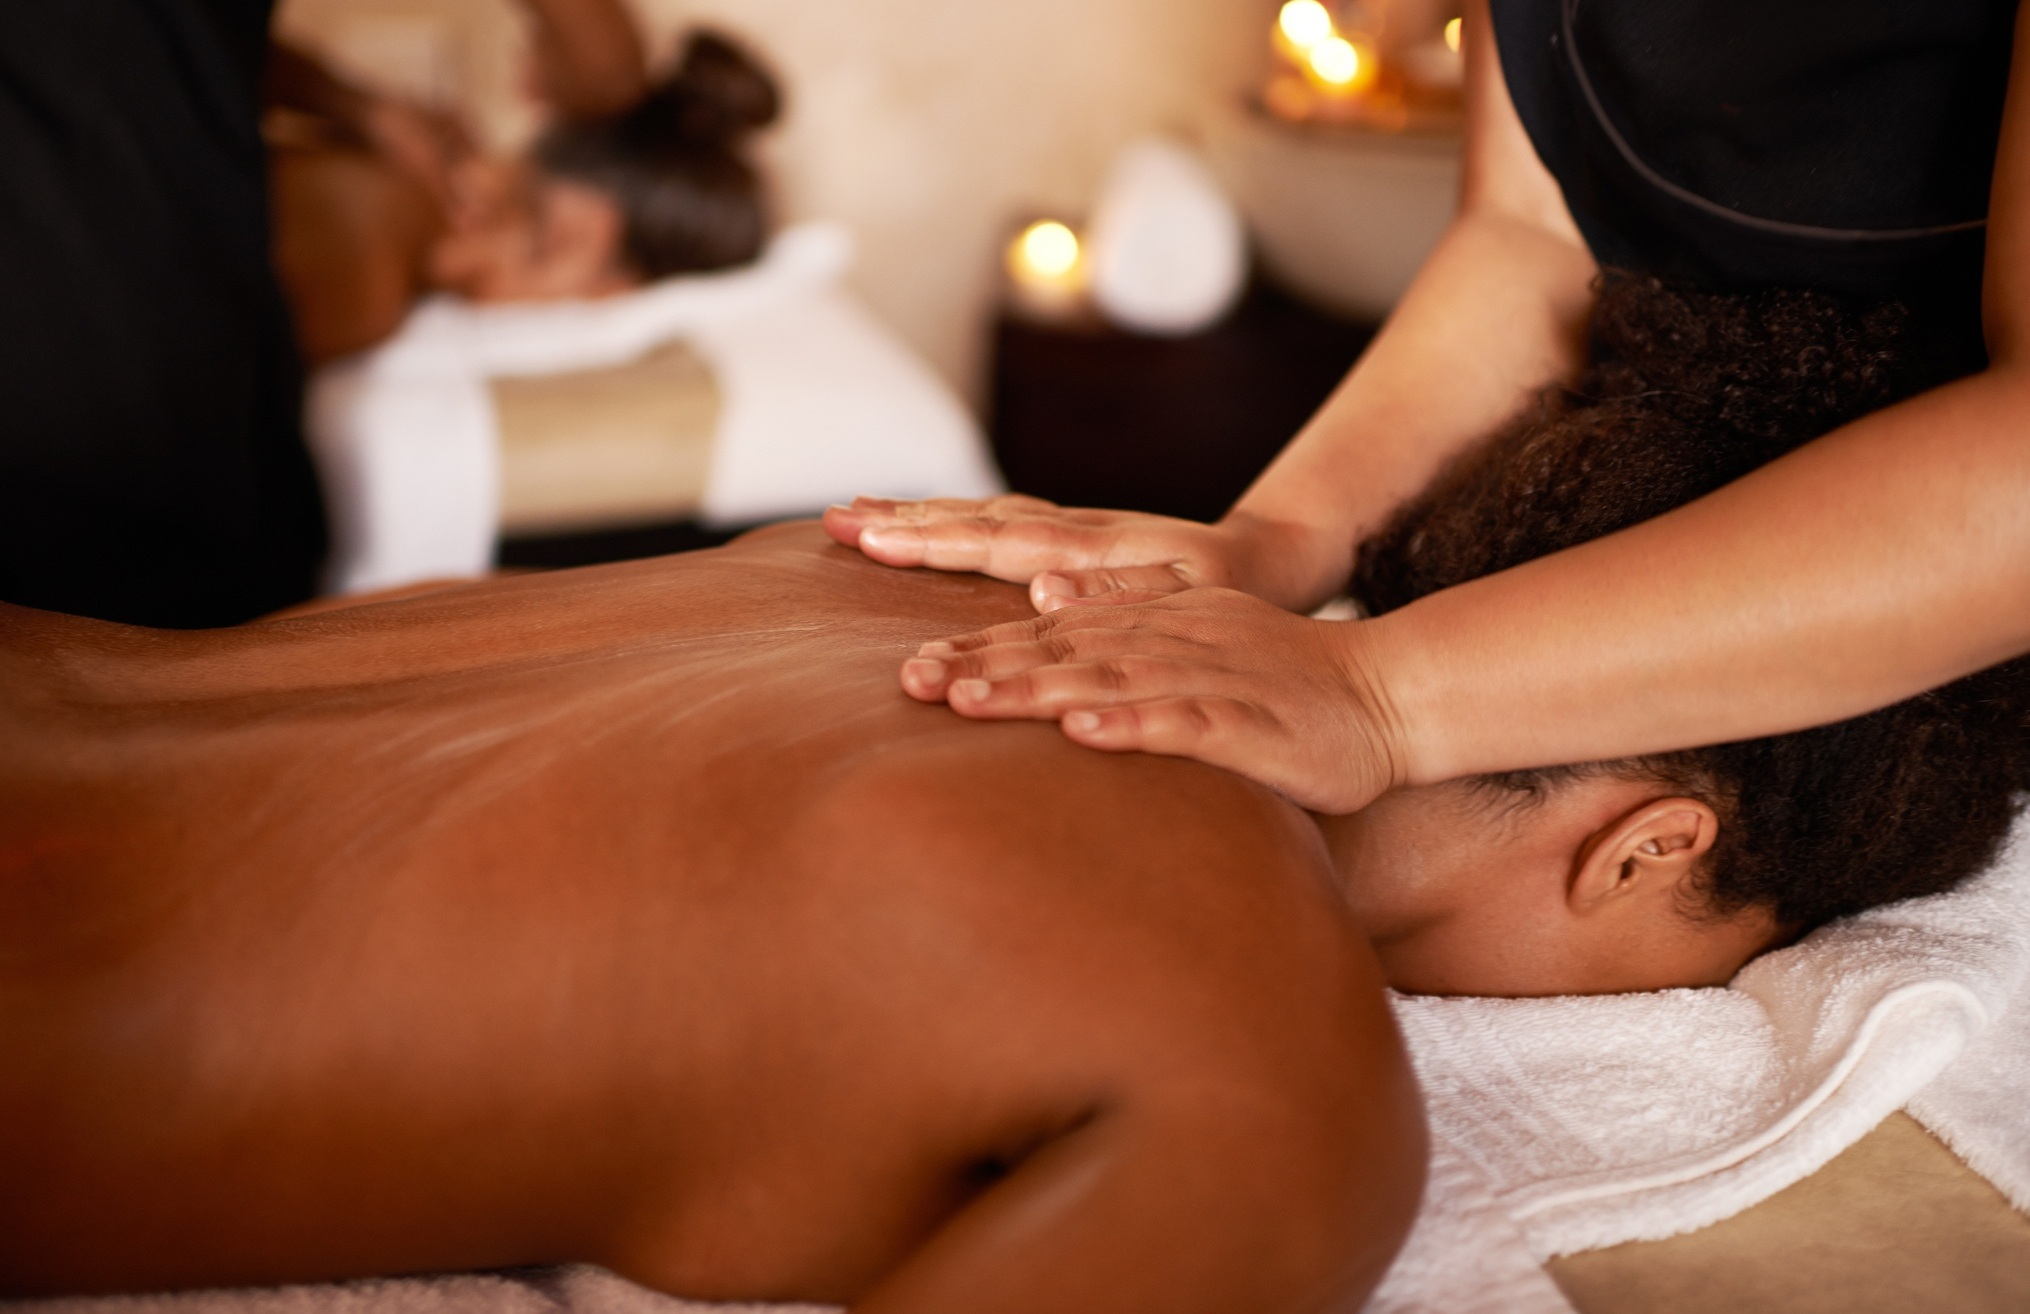 Six Session Intensive Series $338 - The benefits of massage can increase significantly with frequency, especially as a way of kick-starting nervous system regulation and pain management. This series offers 6 session to be used in 8 weeks with a 25% per-session savings.